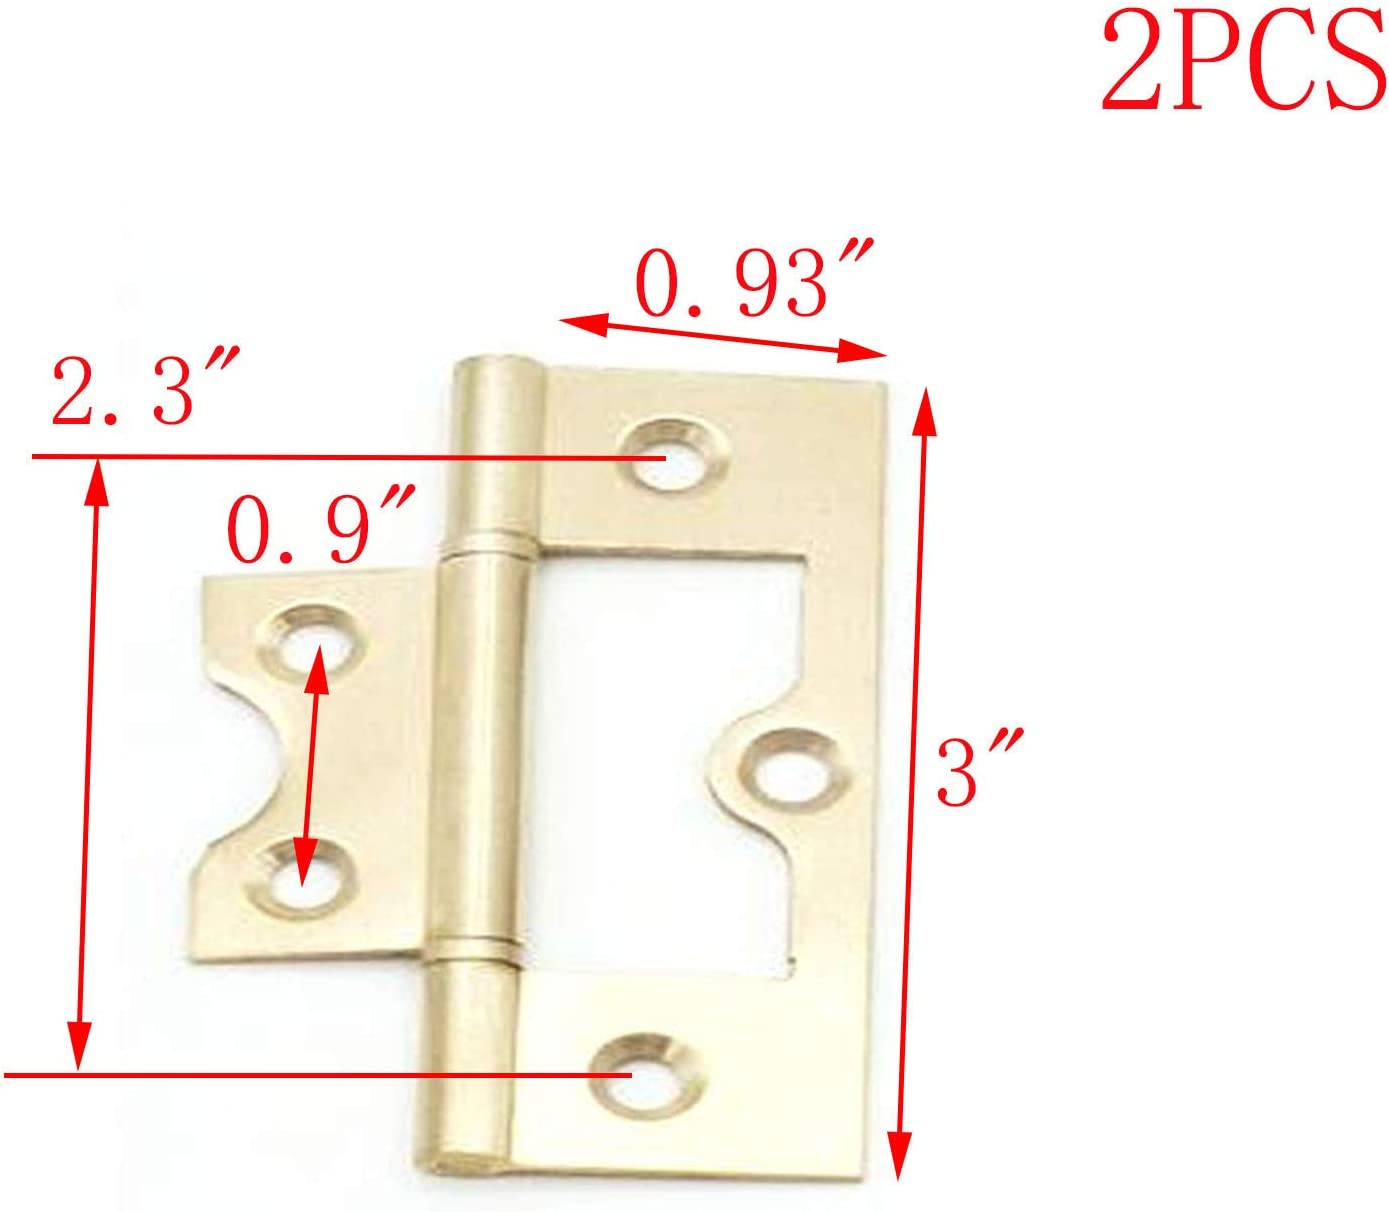 MTMTOOL Non-Mortise Antique Copper Hinge Gold Cabinet Gate Door Hinges with Screws,Gold,2.4 Inch,Pack of 2